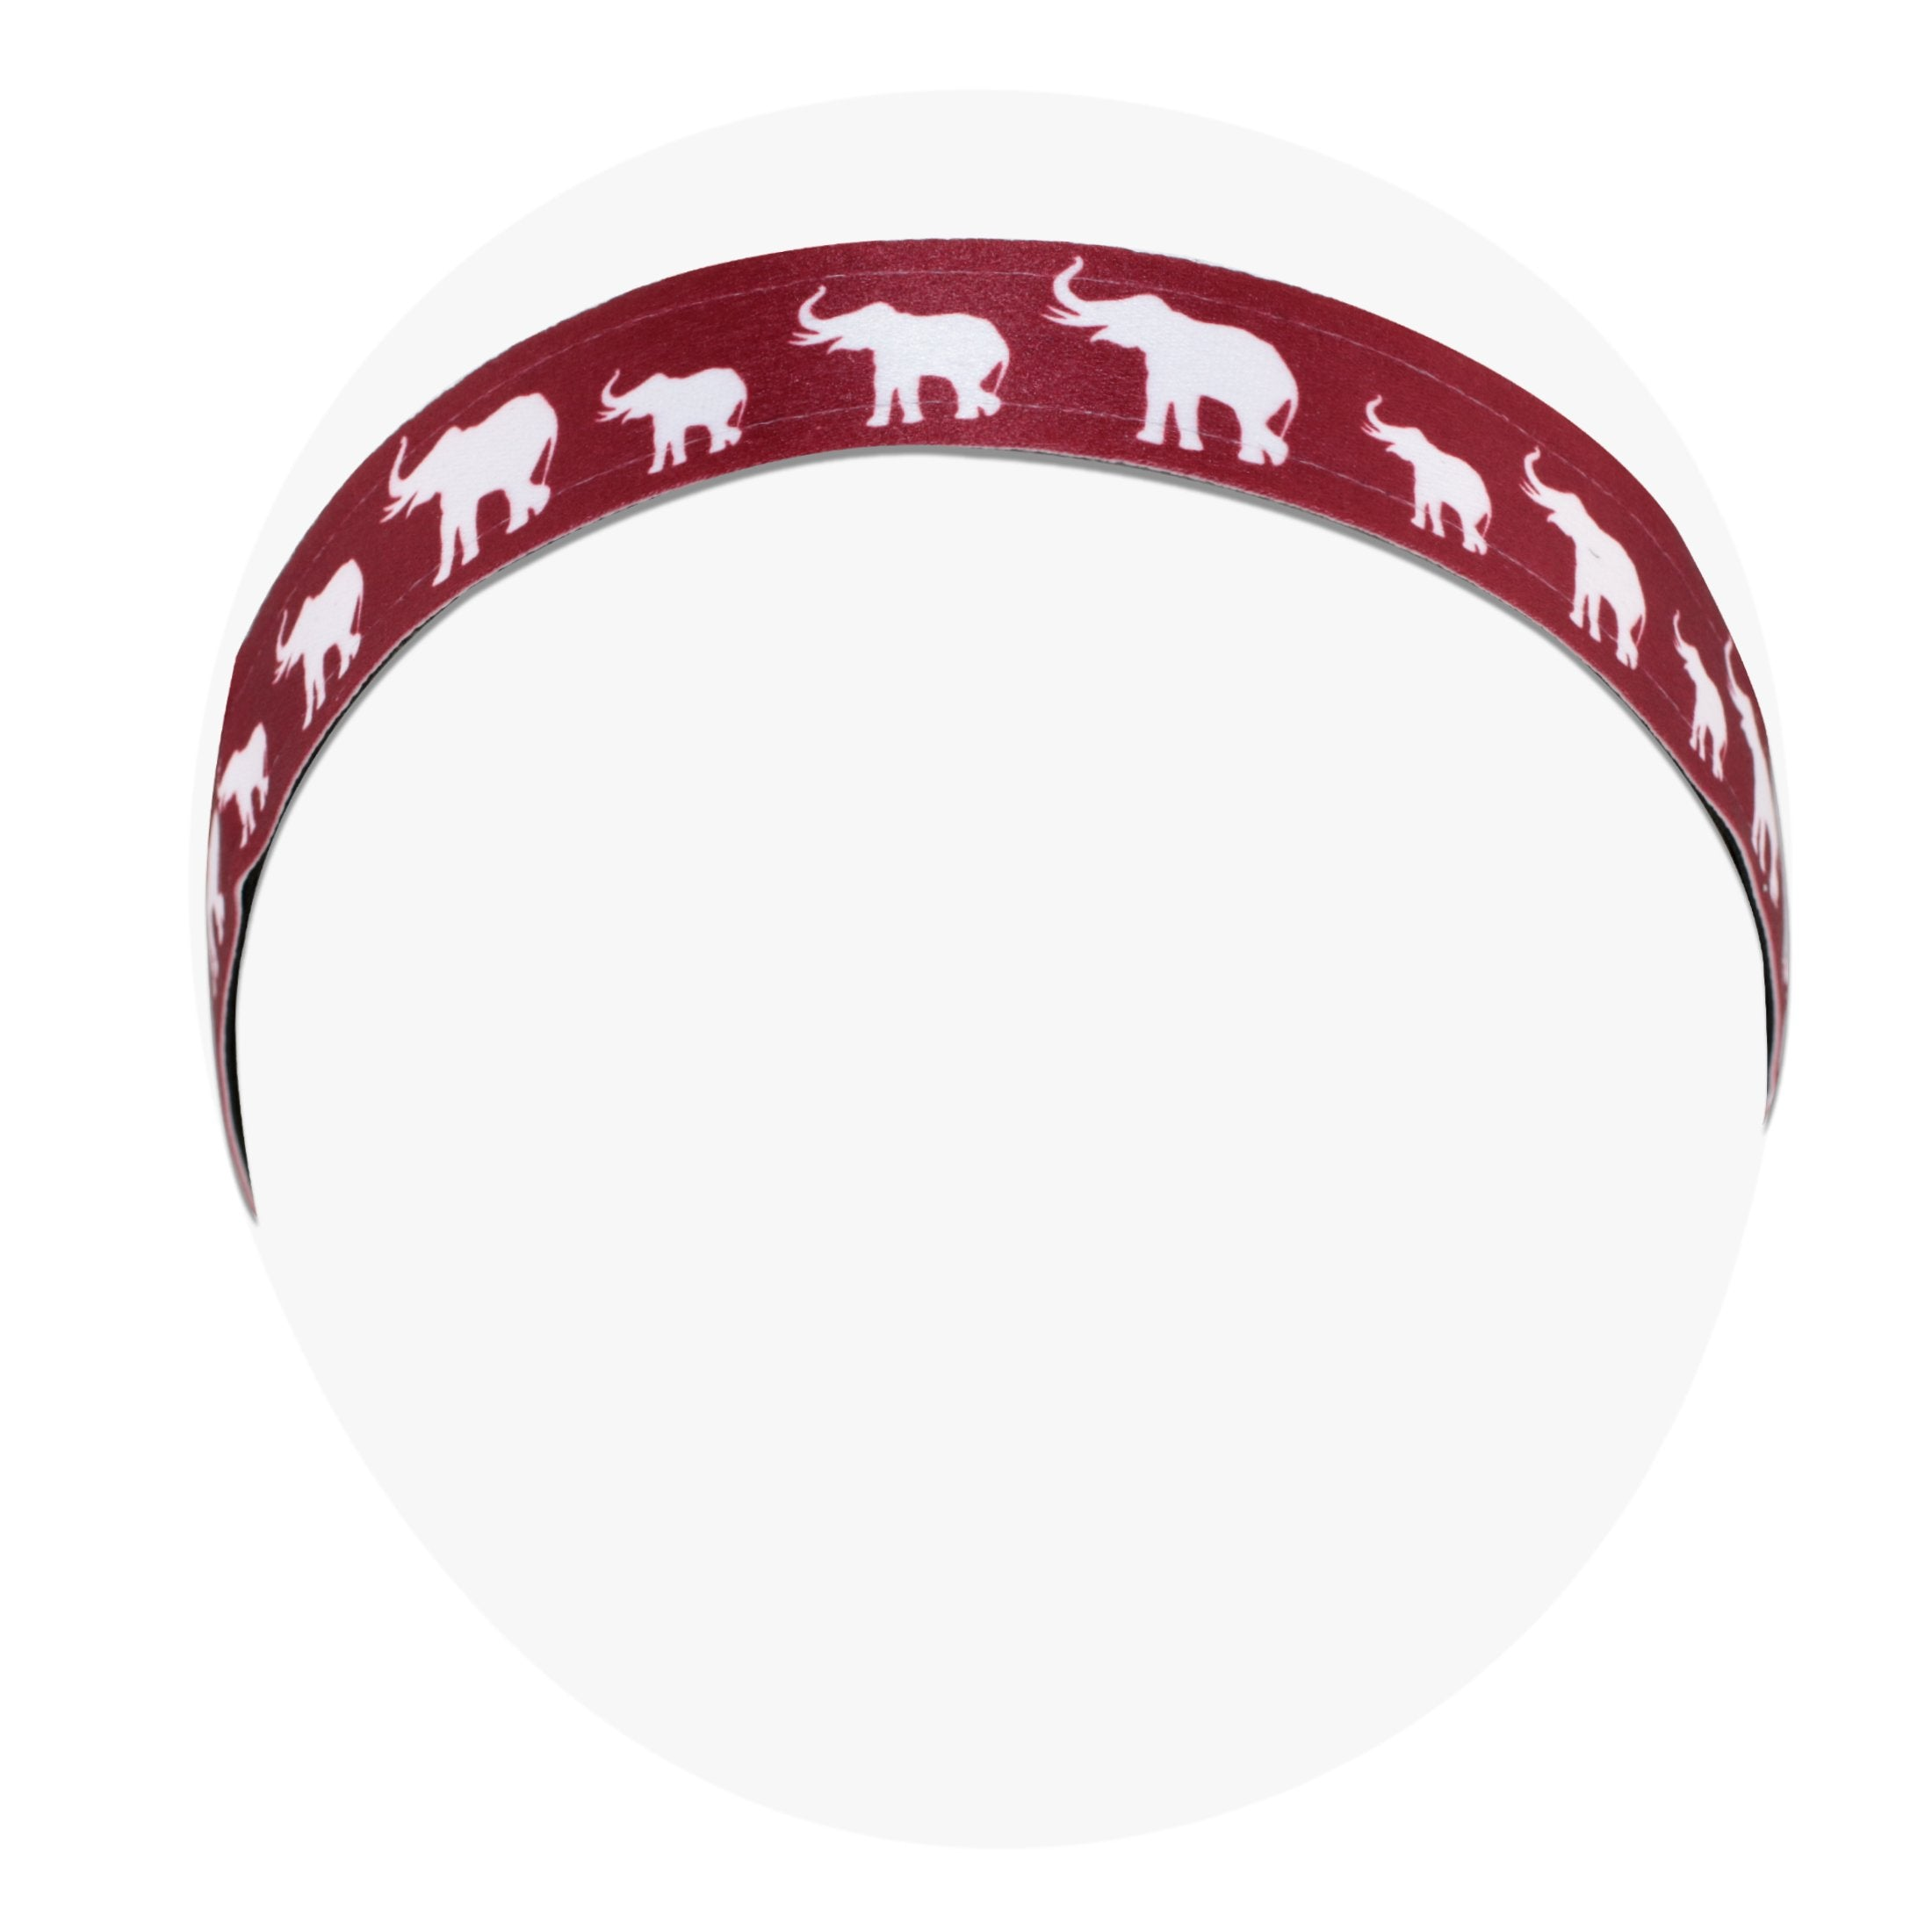 Delta Sigma Theta Inspired Crimson Red Headband with White Elephants